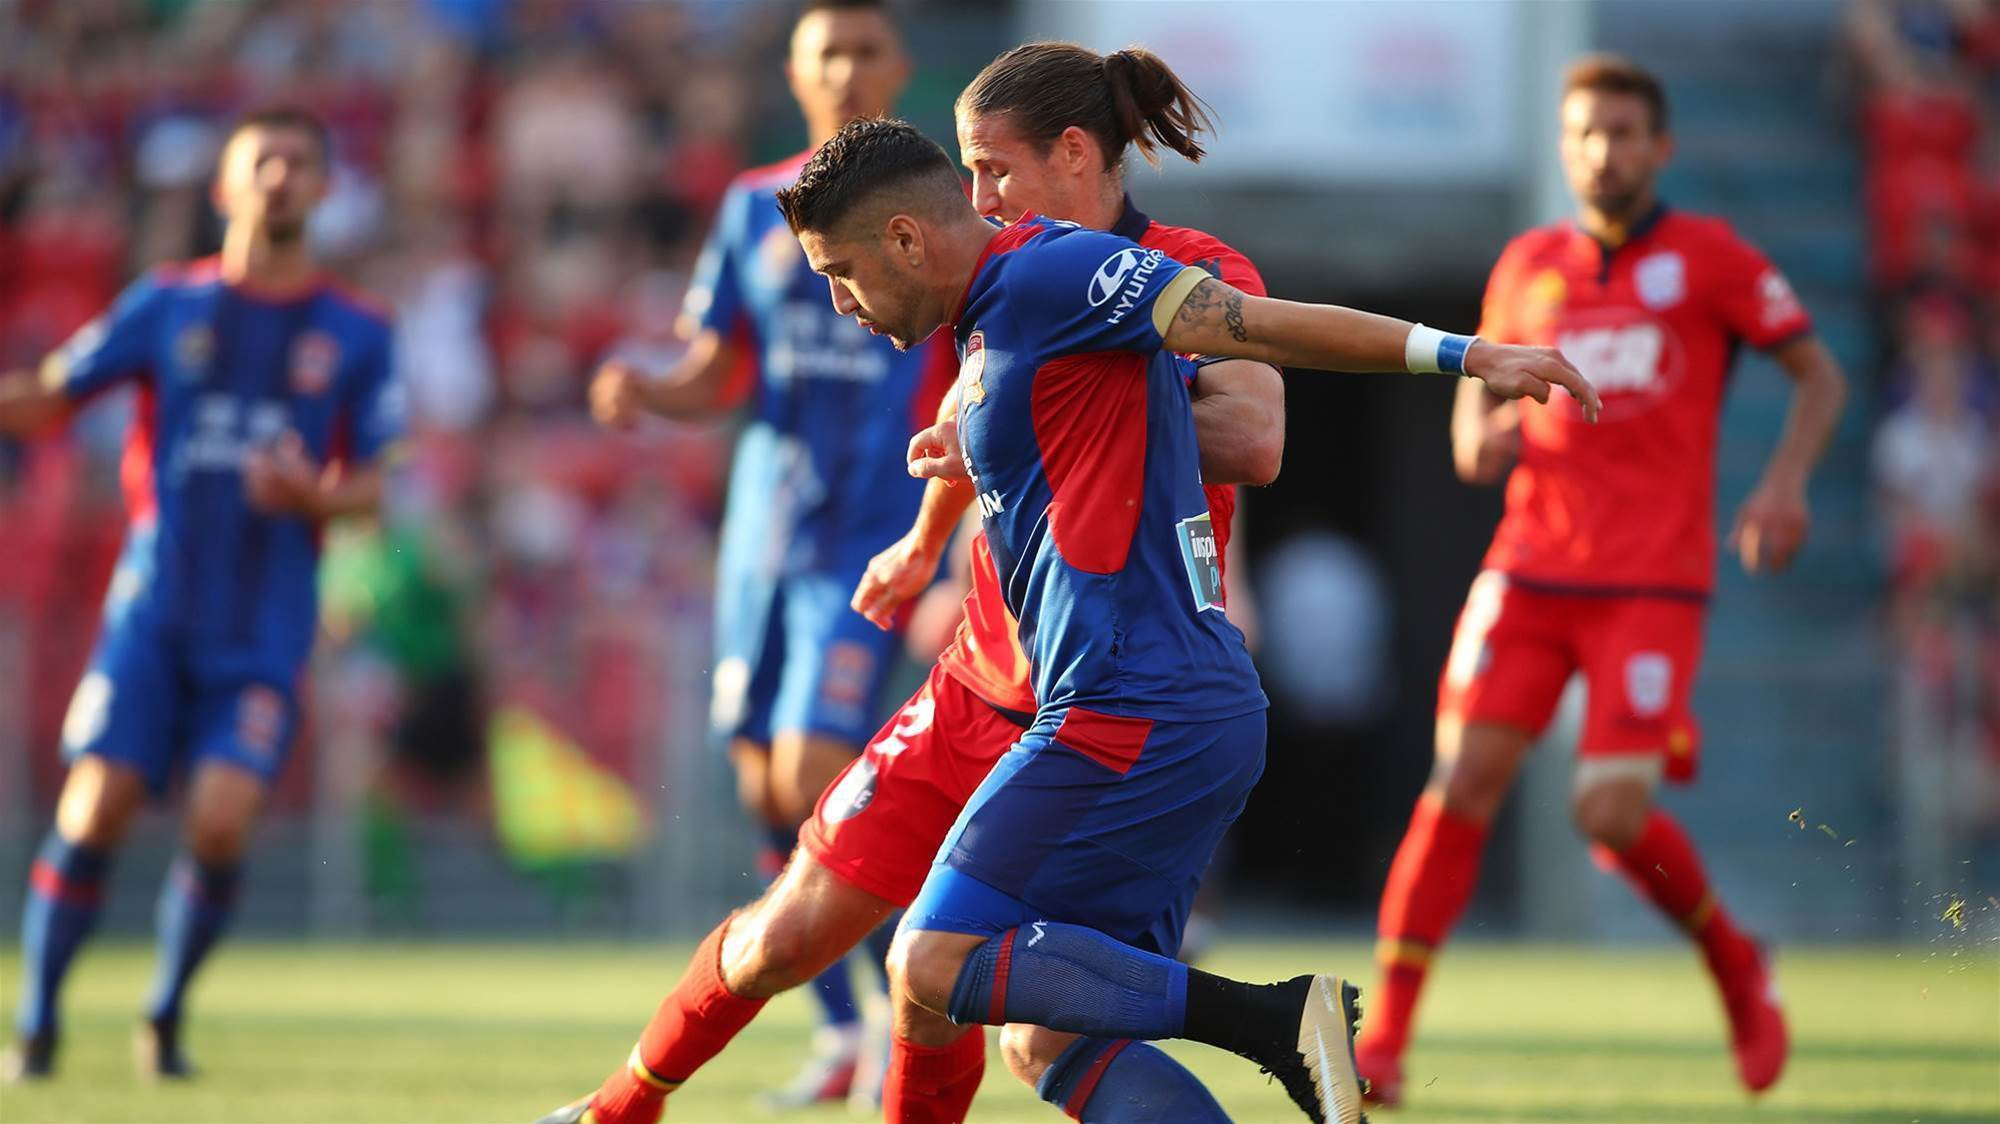 Newcastle Jets v Adelaide United player ratings